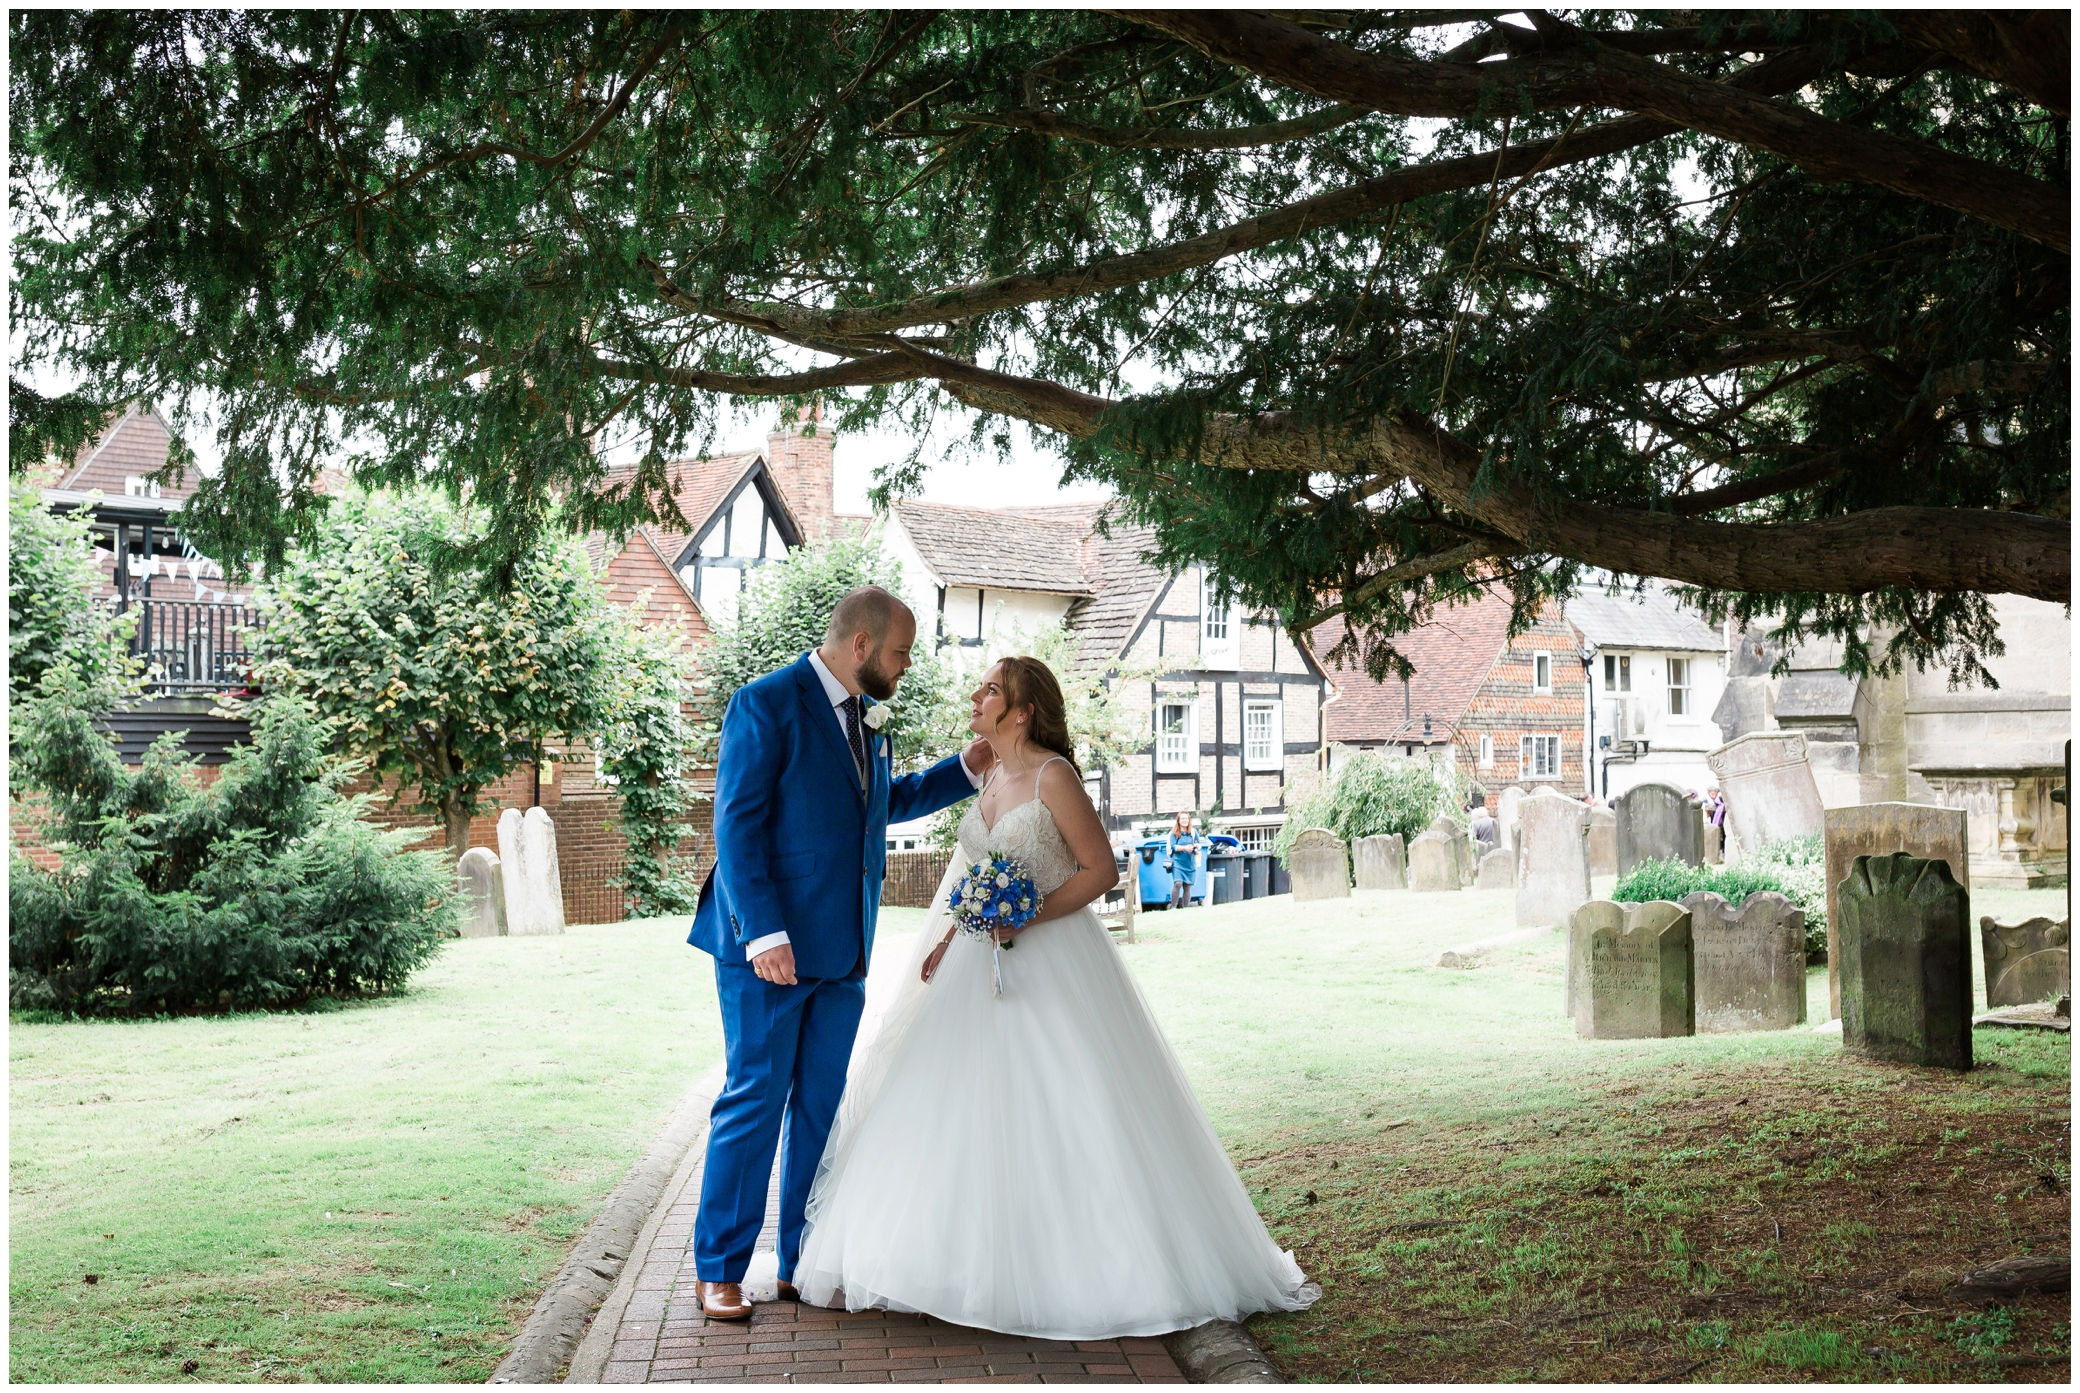 Just married couple outside St Swithun's church in East Grinstead